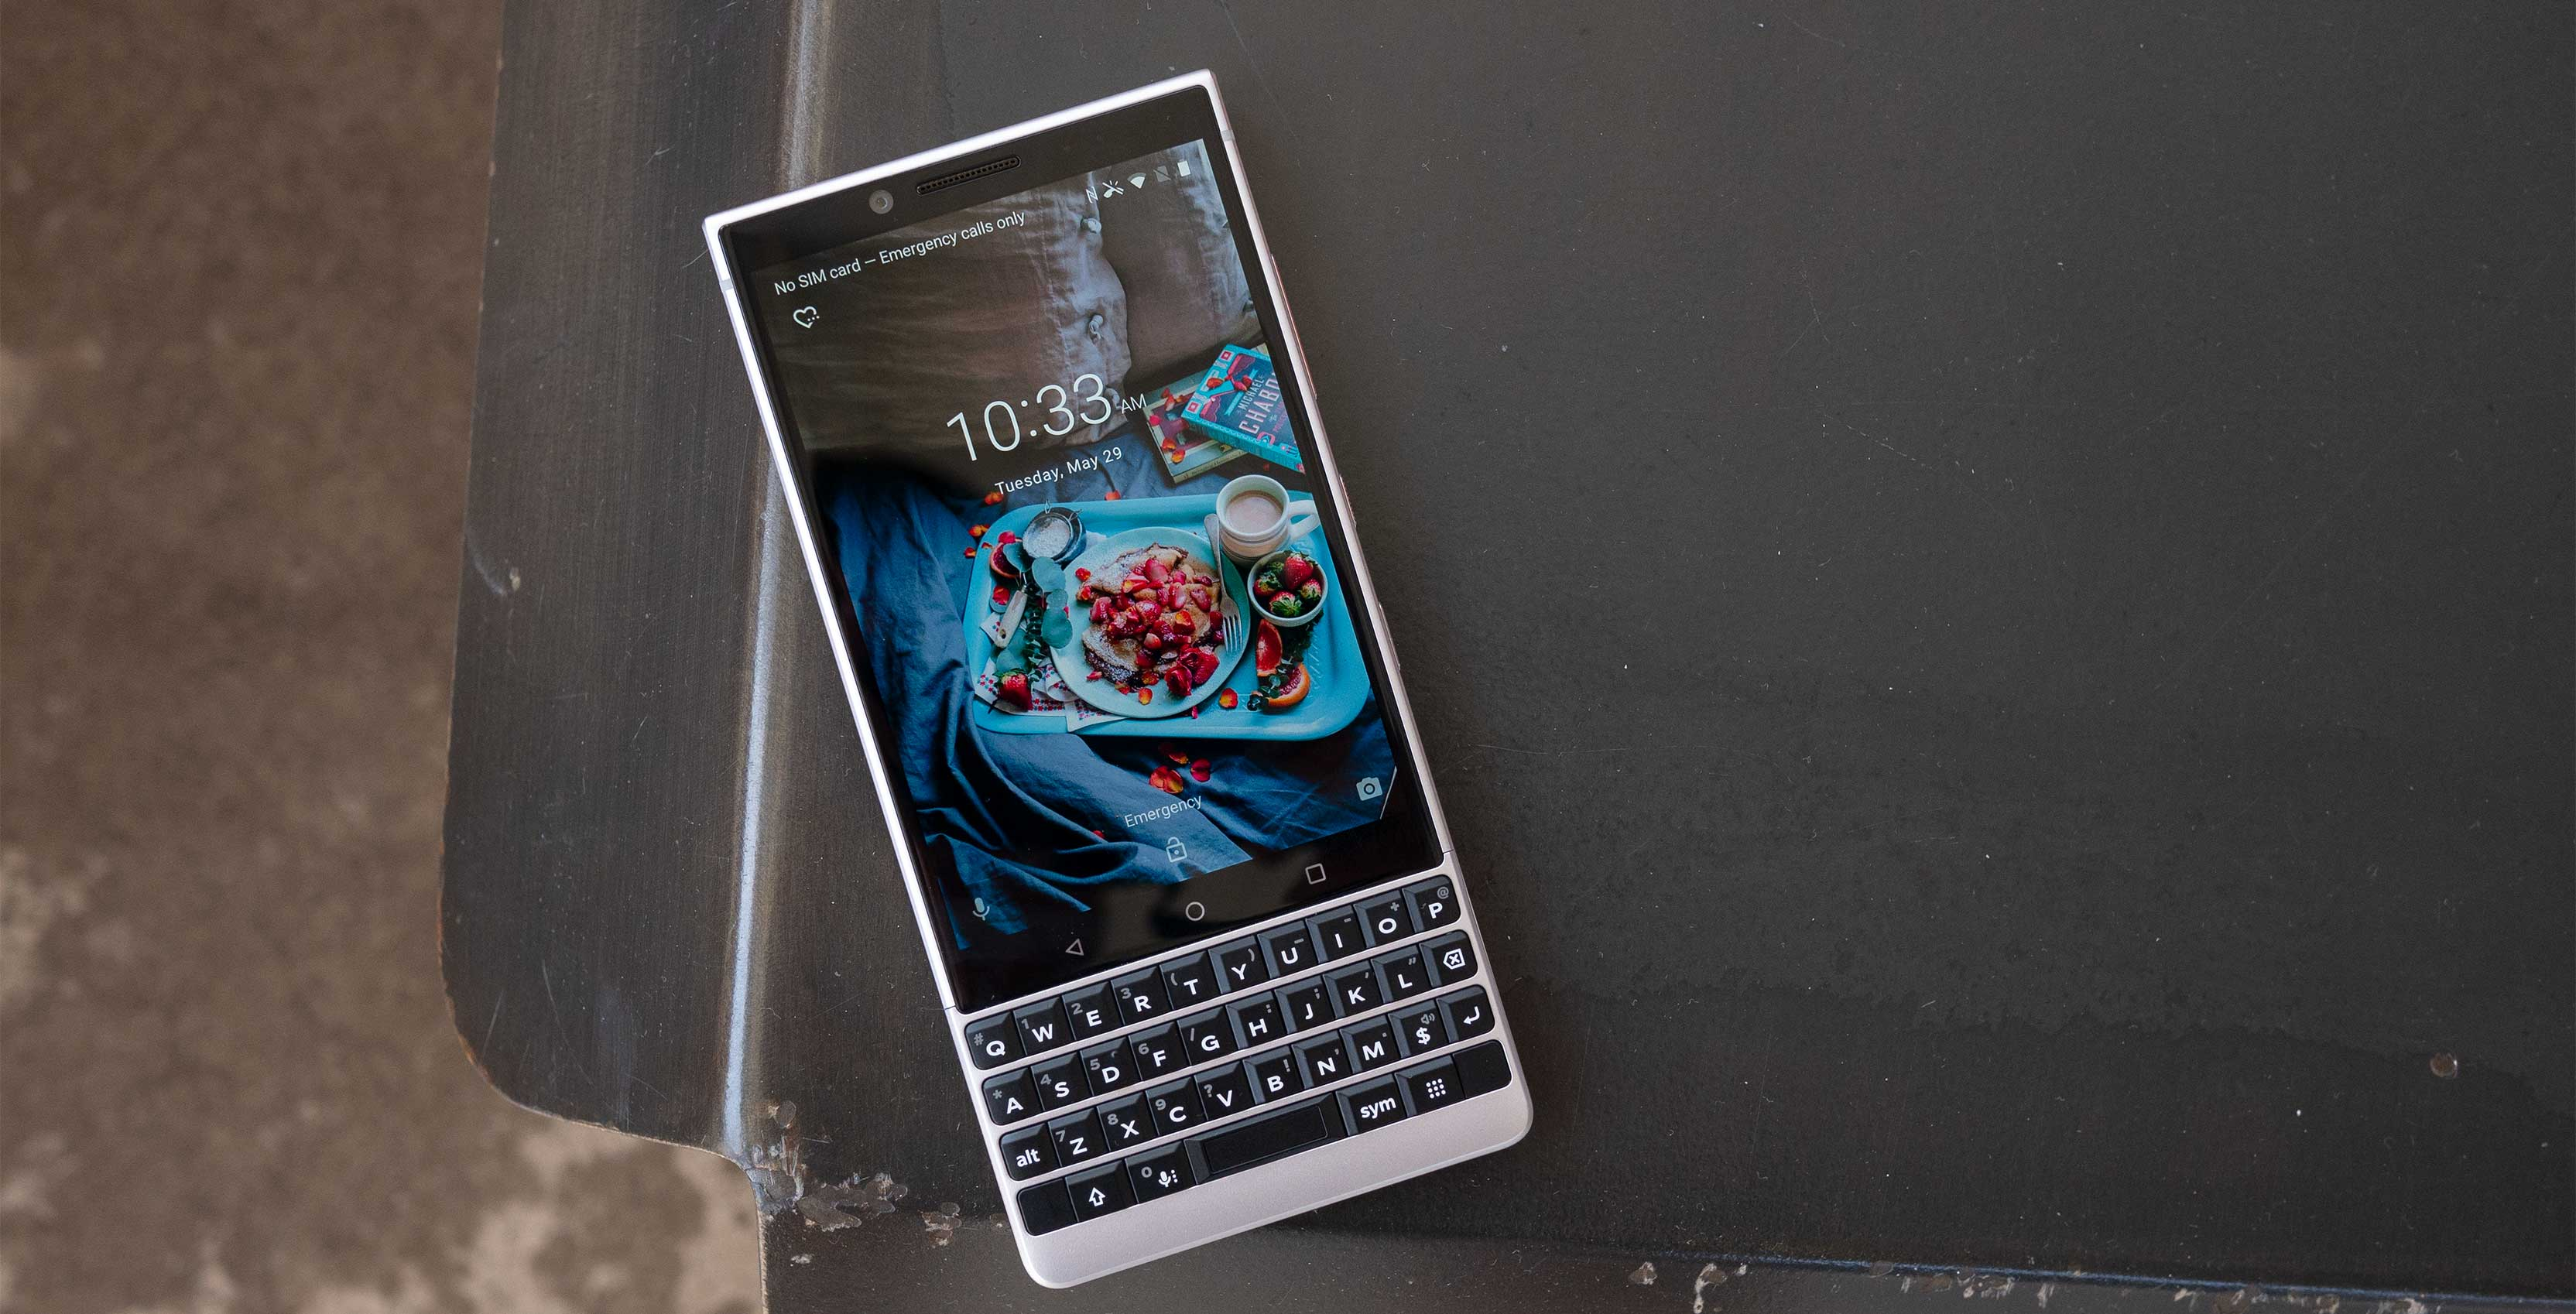 BlackBerry KEY2 unveiled, touts physical keyboard and touch display